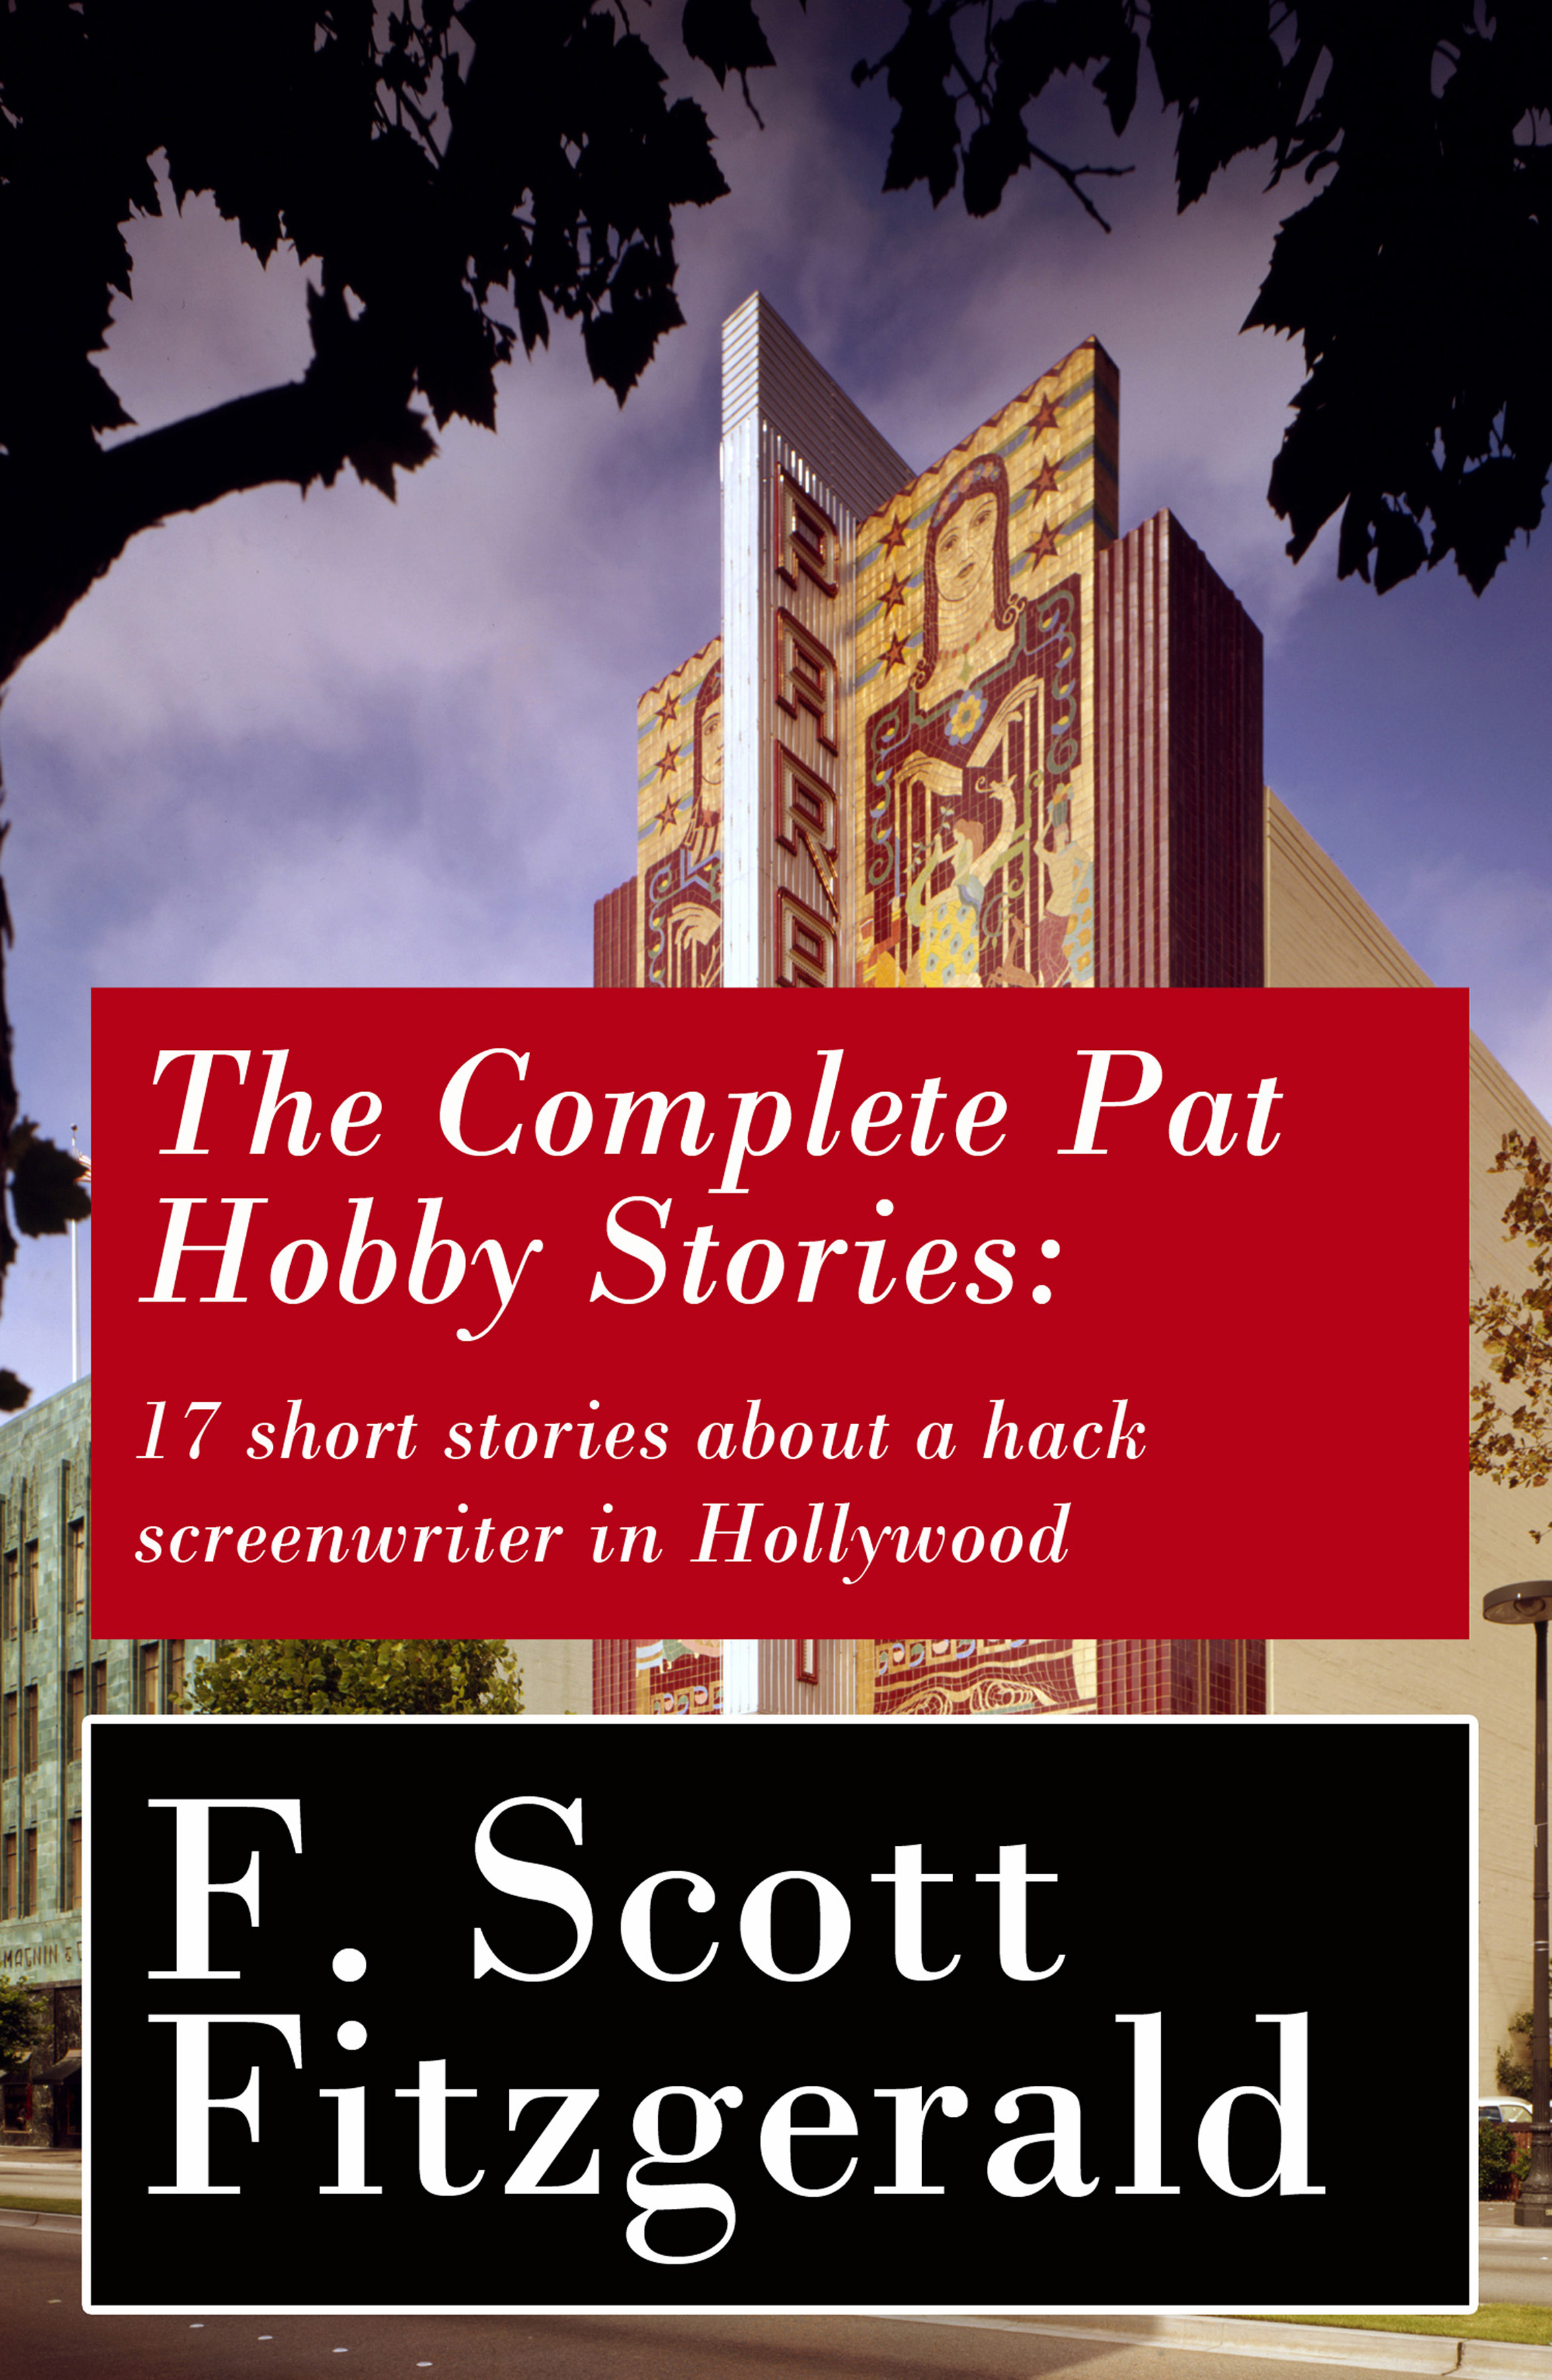 Фото - F. Scott Fitzgerald The Complete Pat Hobby Stories: 17 short stories about a hack screenwriter in Hollywood cengage learning gale a study guide for f scott fitzgerald s a new leaf